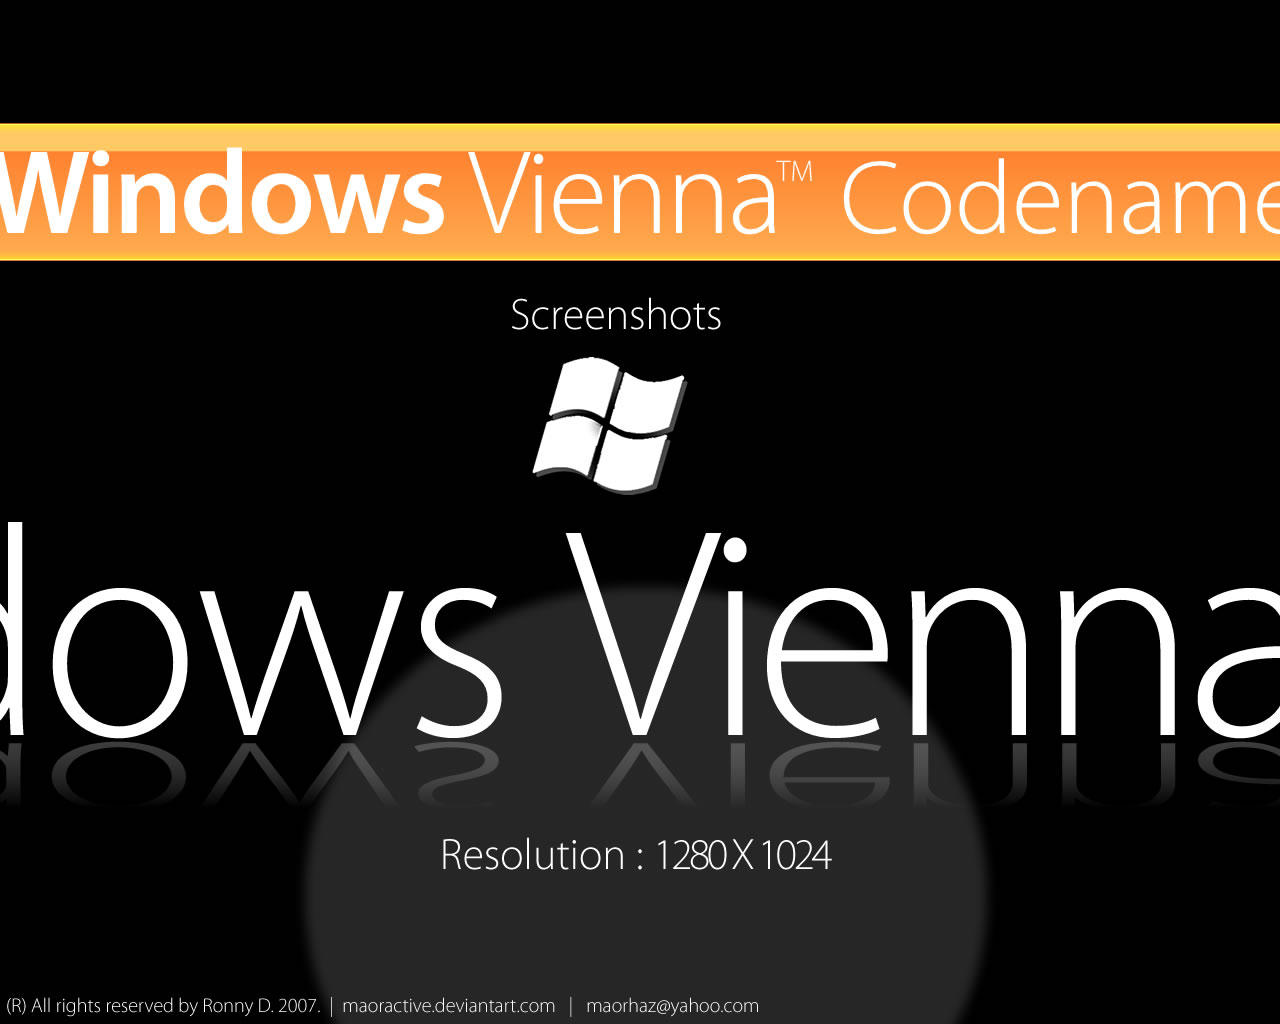 Windows Vienna Screenshots by maoractive